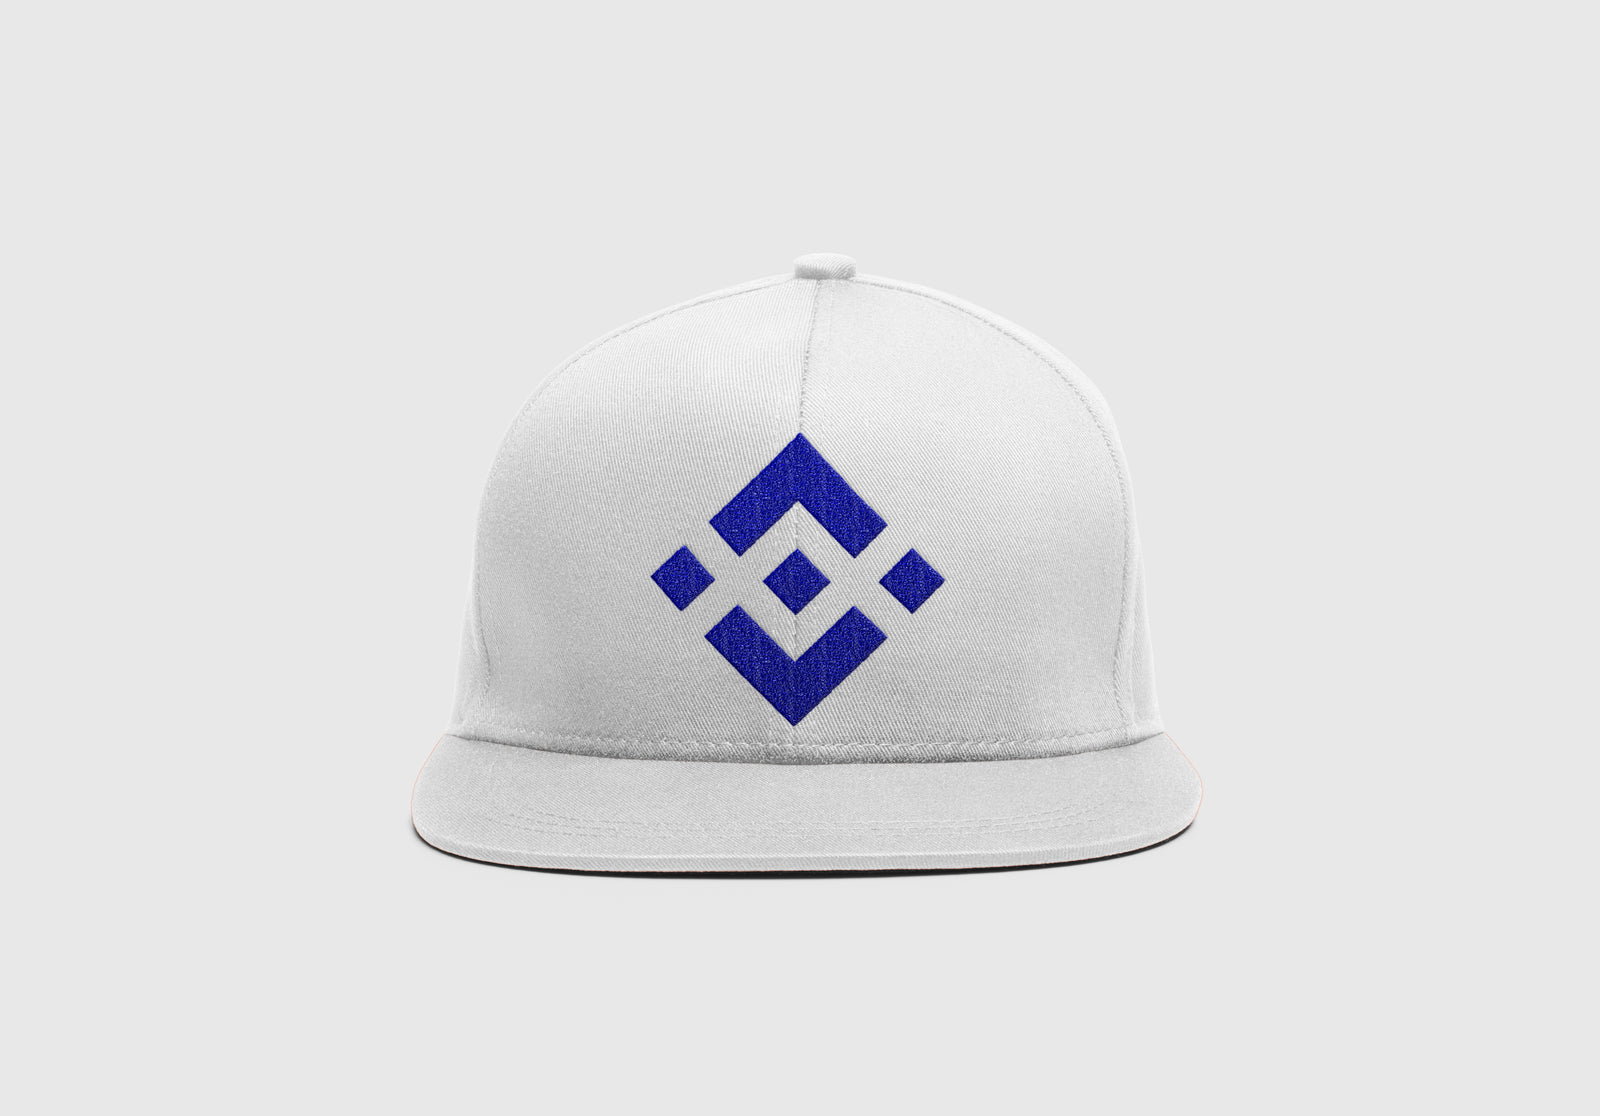 Binance Crypto BNB Snapback Hat